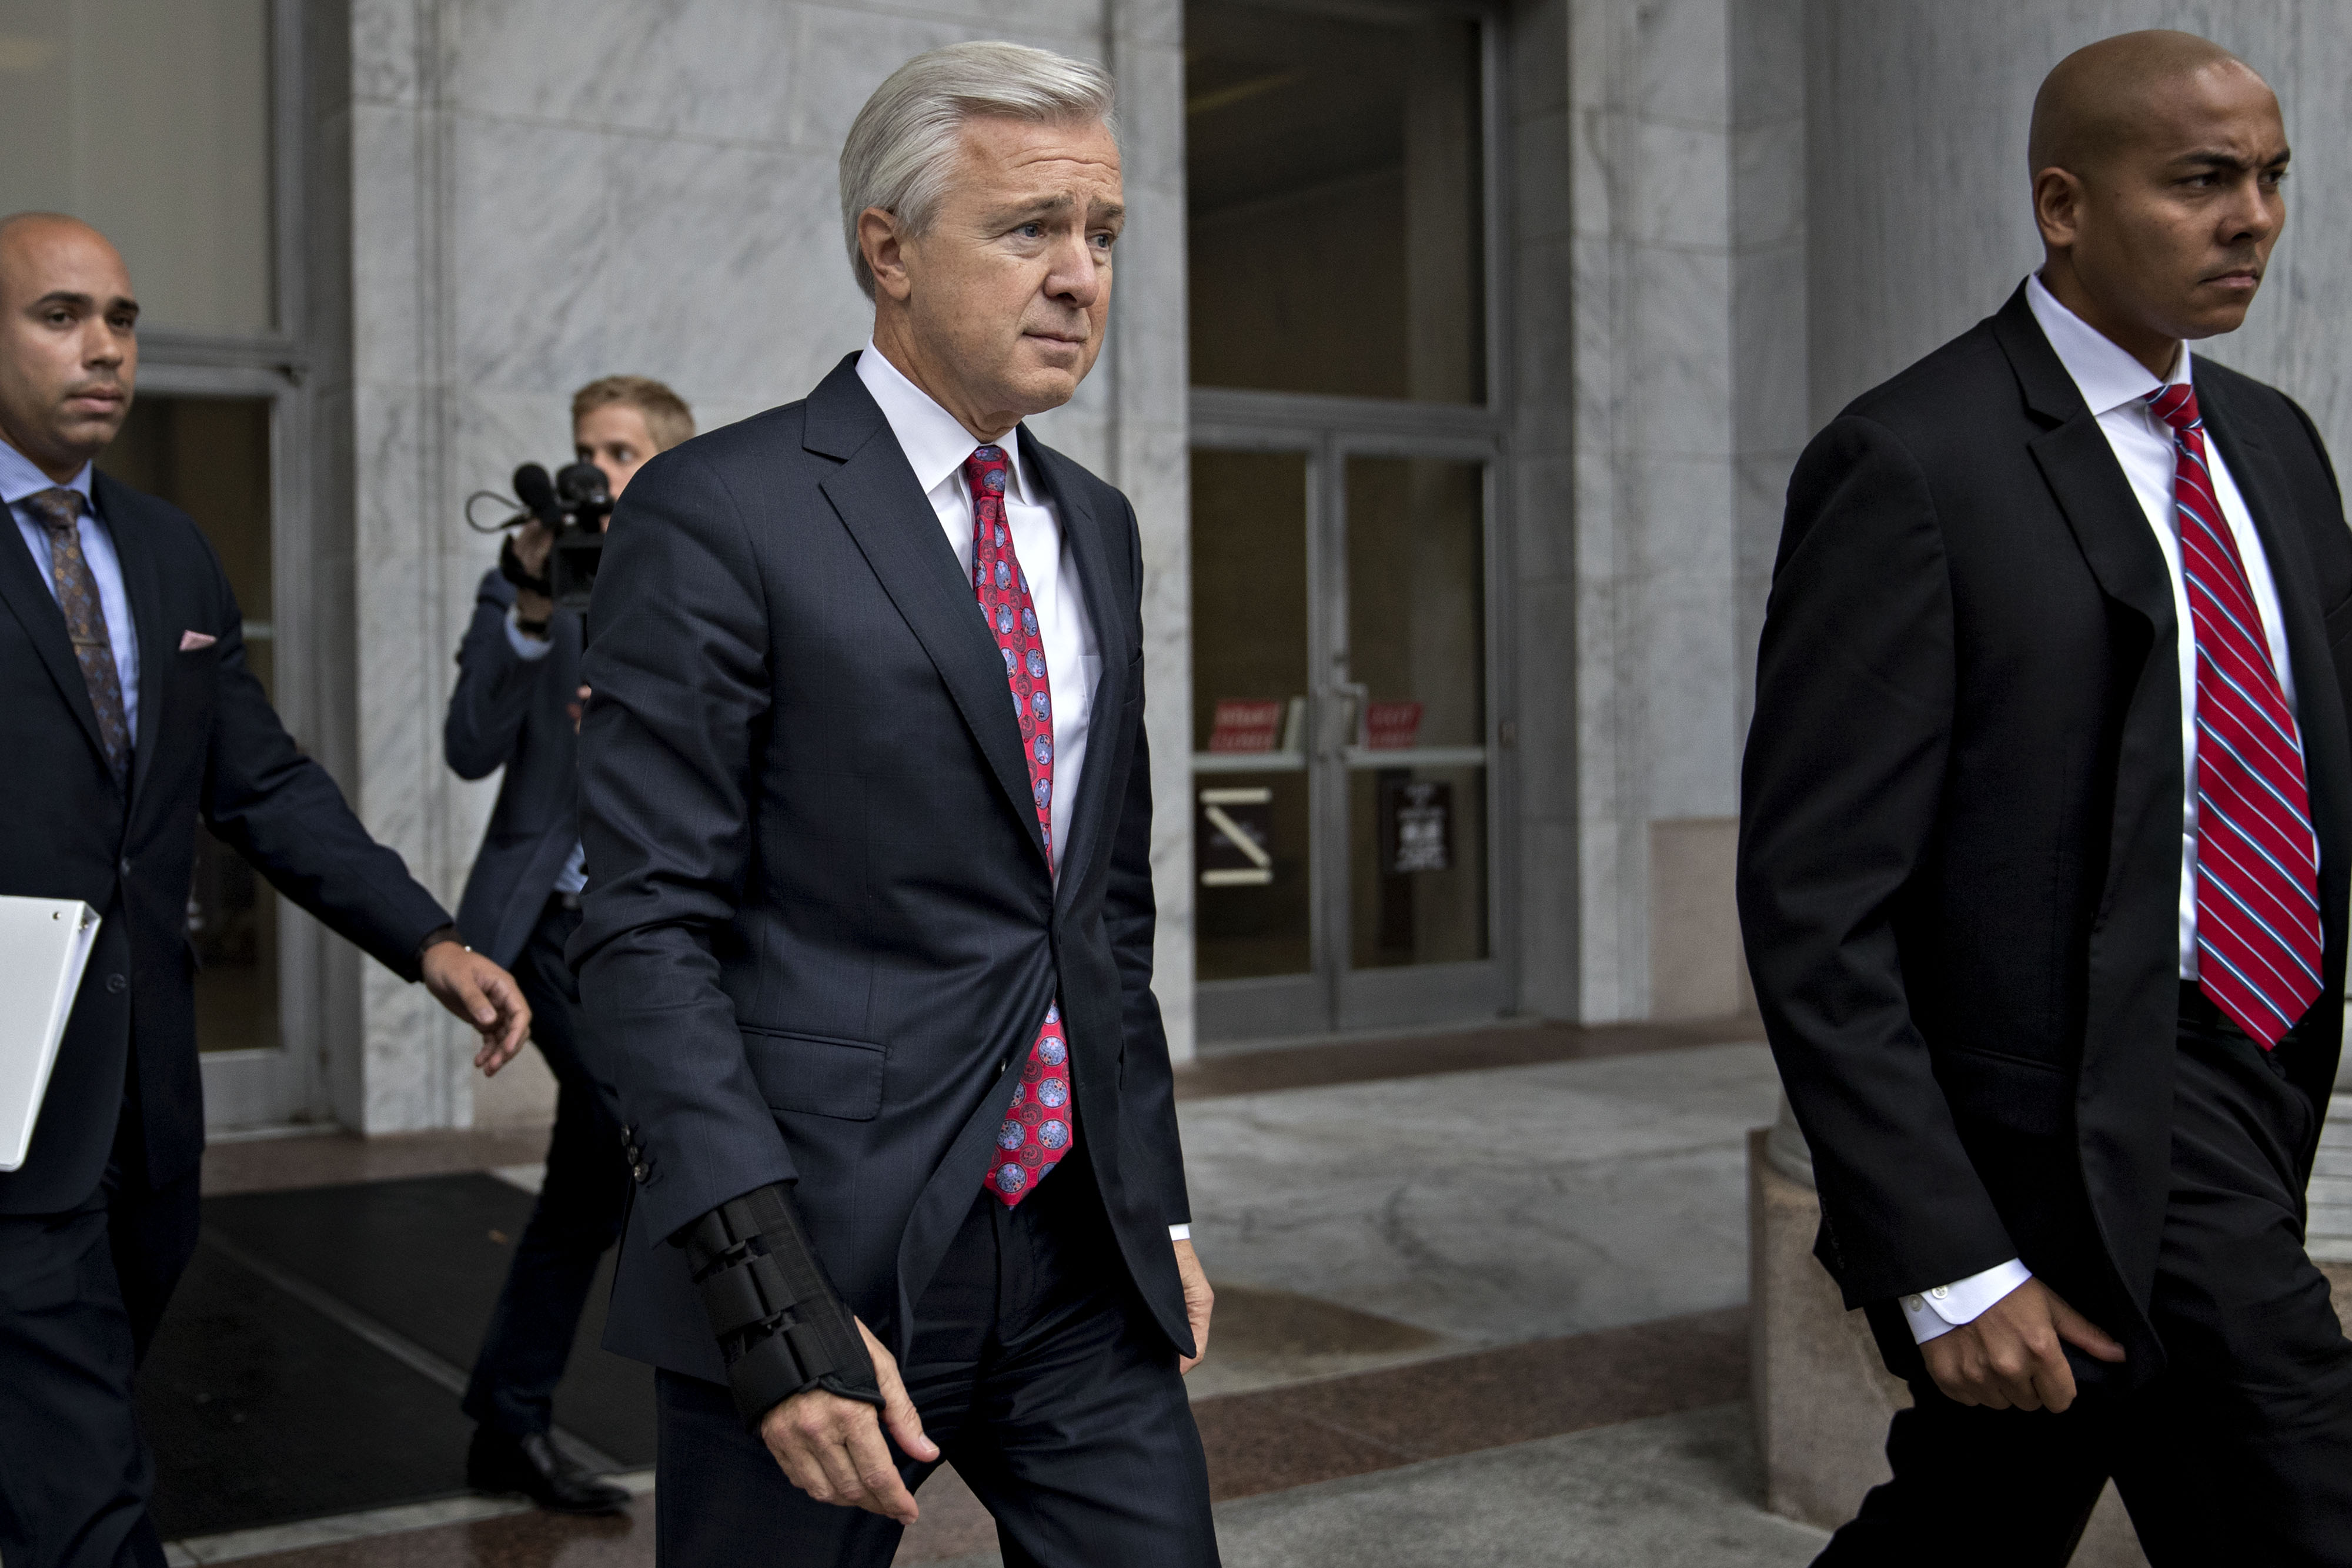 Former Wells Fargo CEO John Stumpf exits the Rayburn House Office building after a House Financial Services Committee hearing in Washington, D.C.